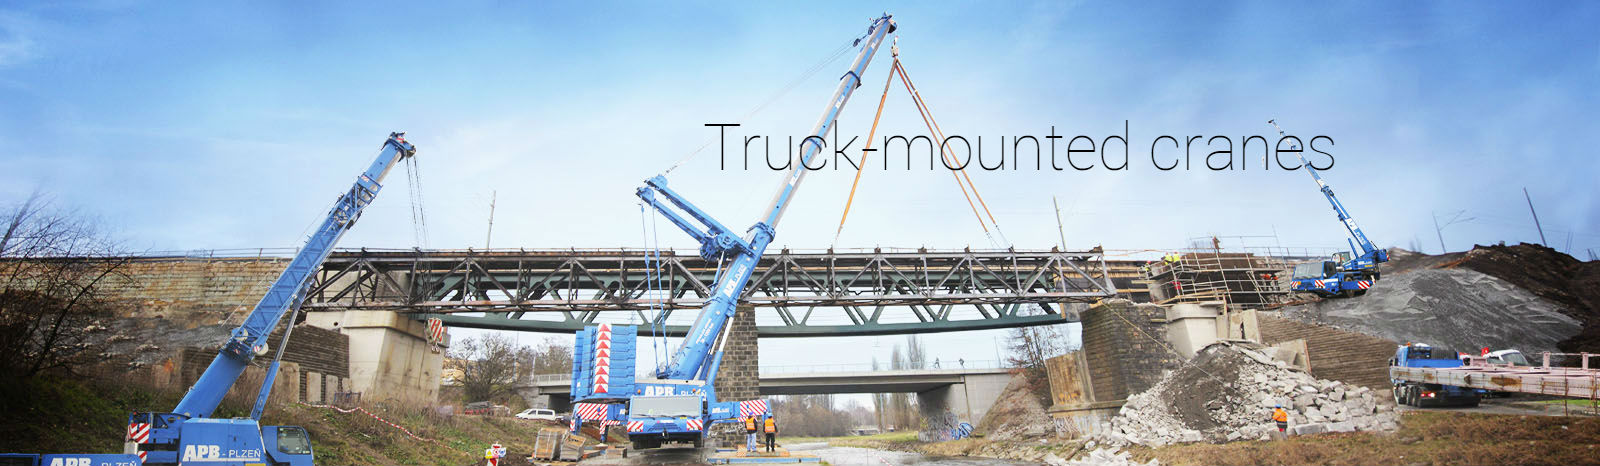 Truck-mounted cranes